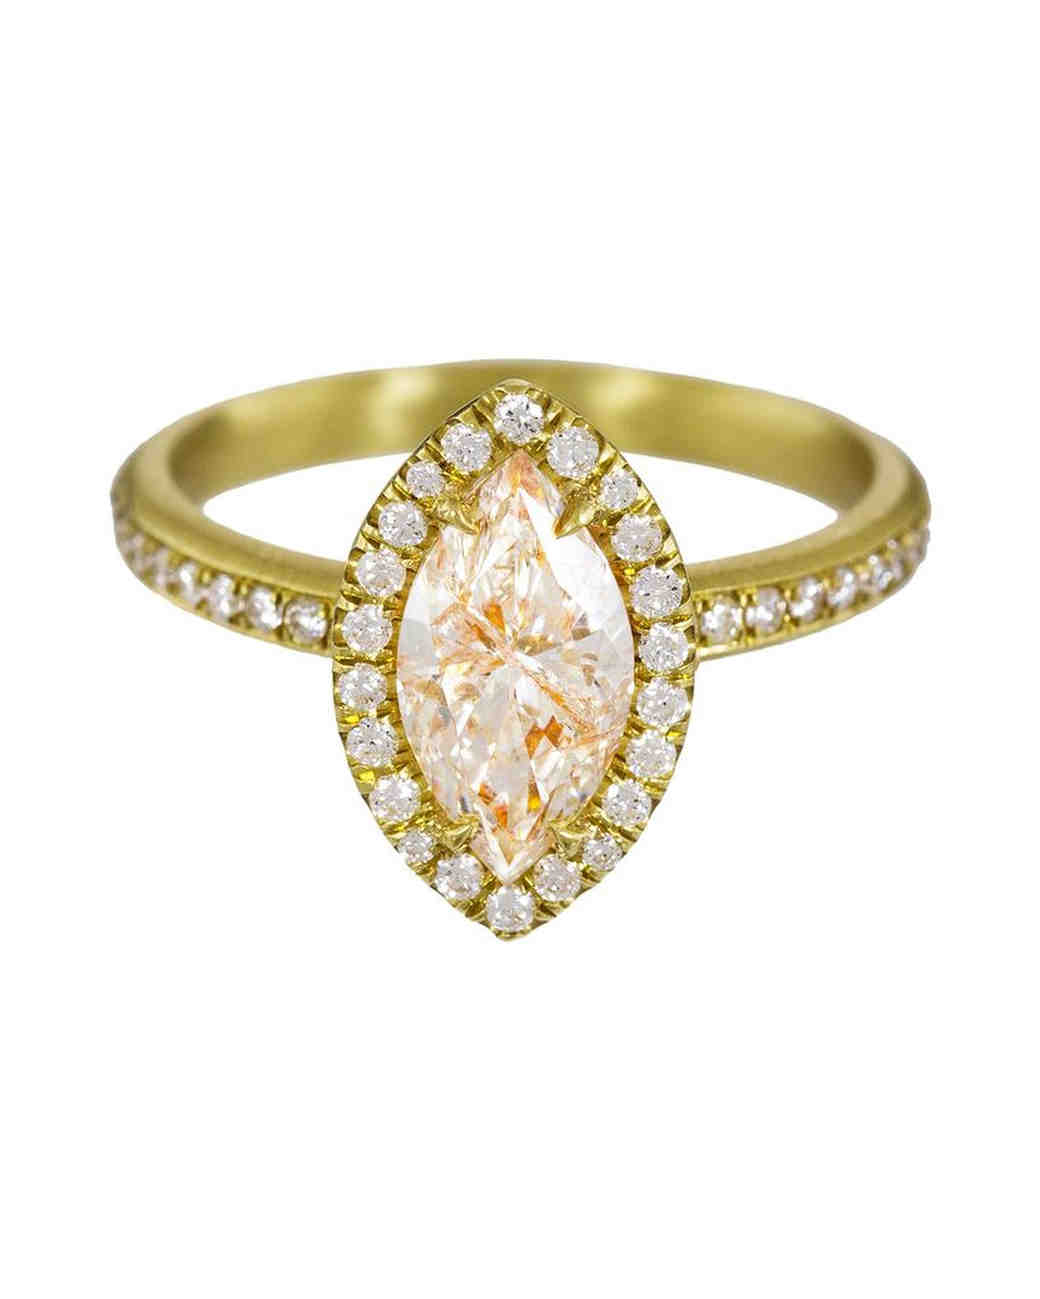 Mandrel Studio Marquise-Cut Engagement Ring with Diamond Shank Gold Band and Halo